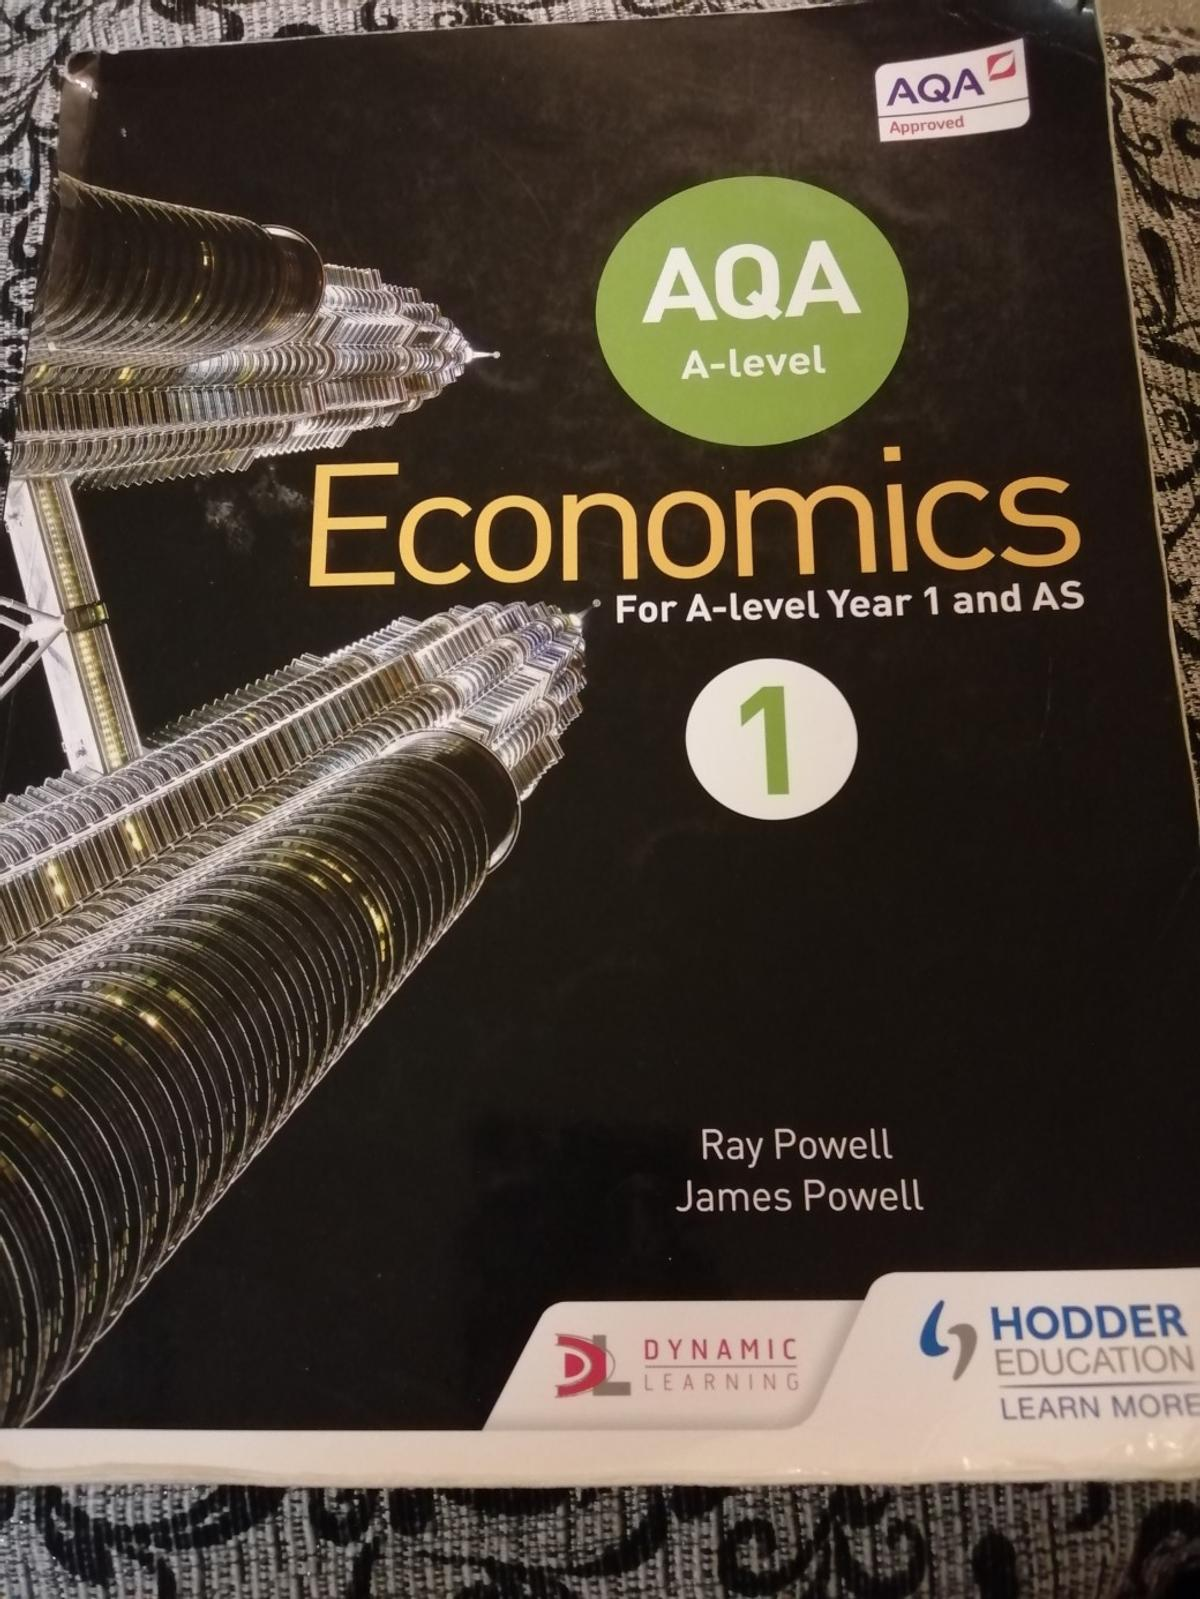 This textbook has been fully updated to cover the new A Level specification, giving you up-to-date material that supports your learning. You can develop subject knowledge with topic by topic insight. You can also develop awareness of current issues in economics with new case study materials. Finally, strengthen your exam technique through worked examples and practice questions and activities.